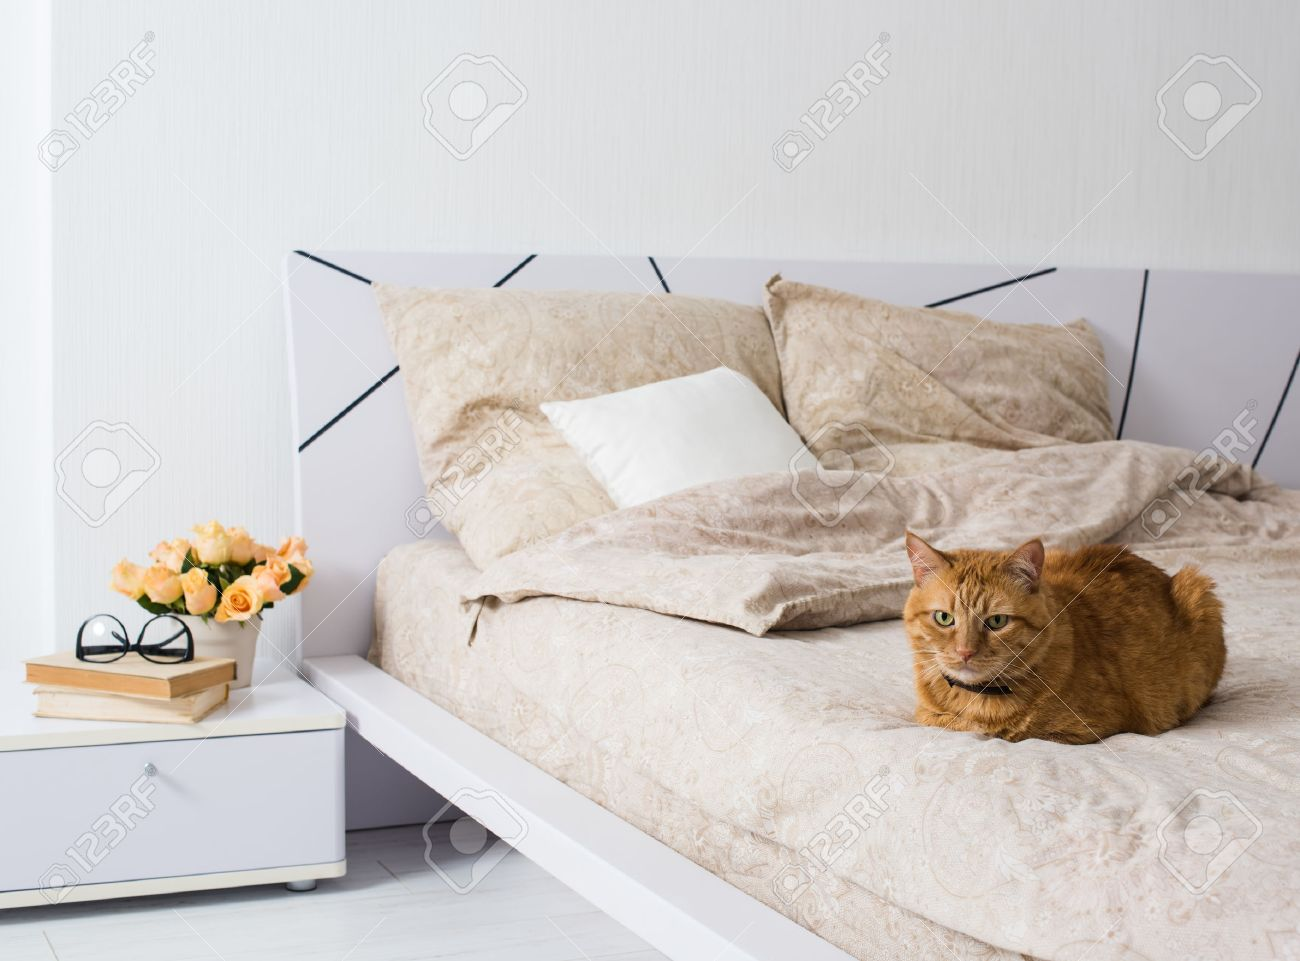 Bright White Bedroom Interior, Cat Sitting On A Bed With Beige Linen,  Flowers On